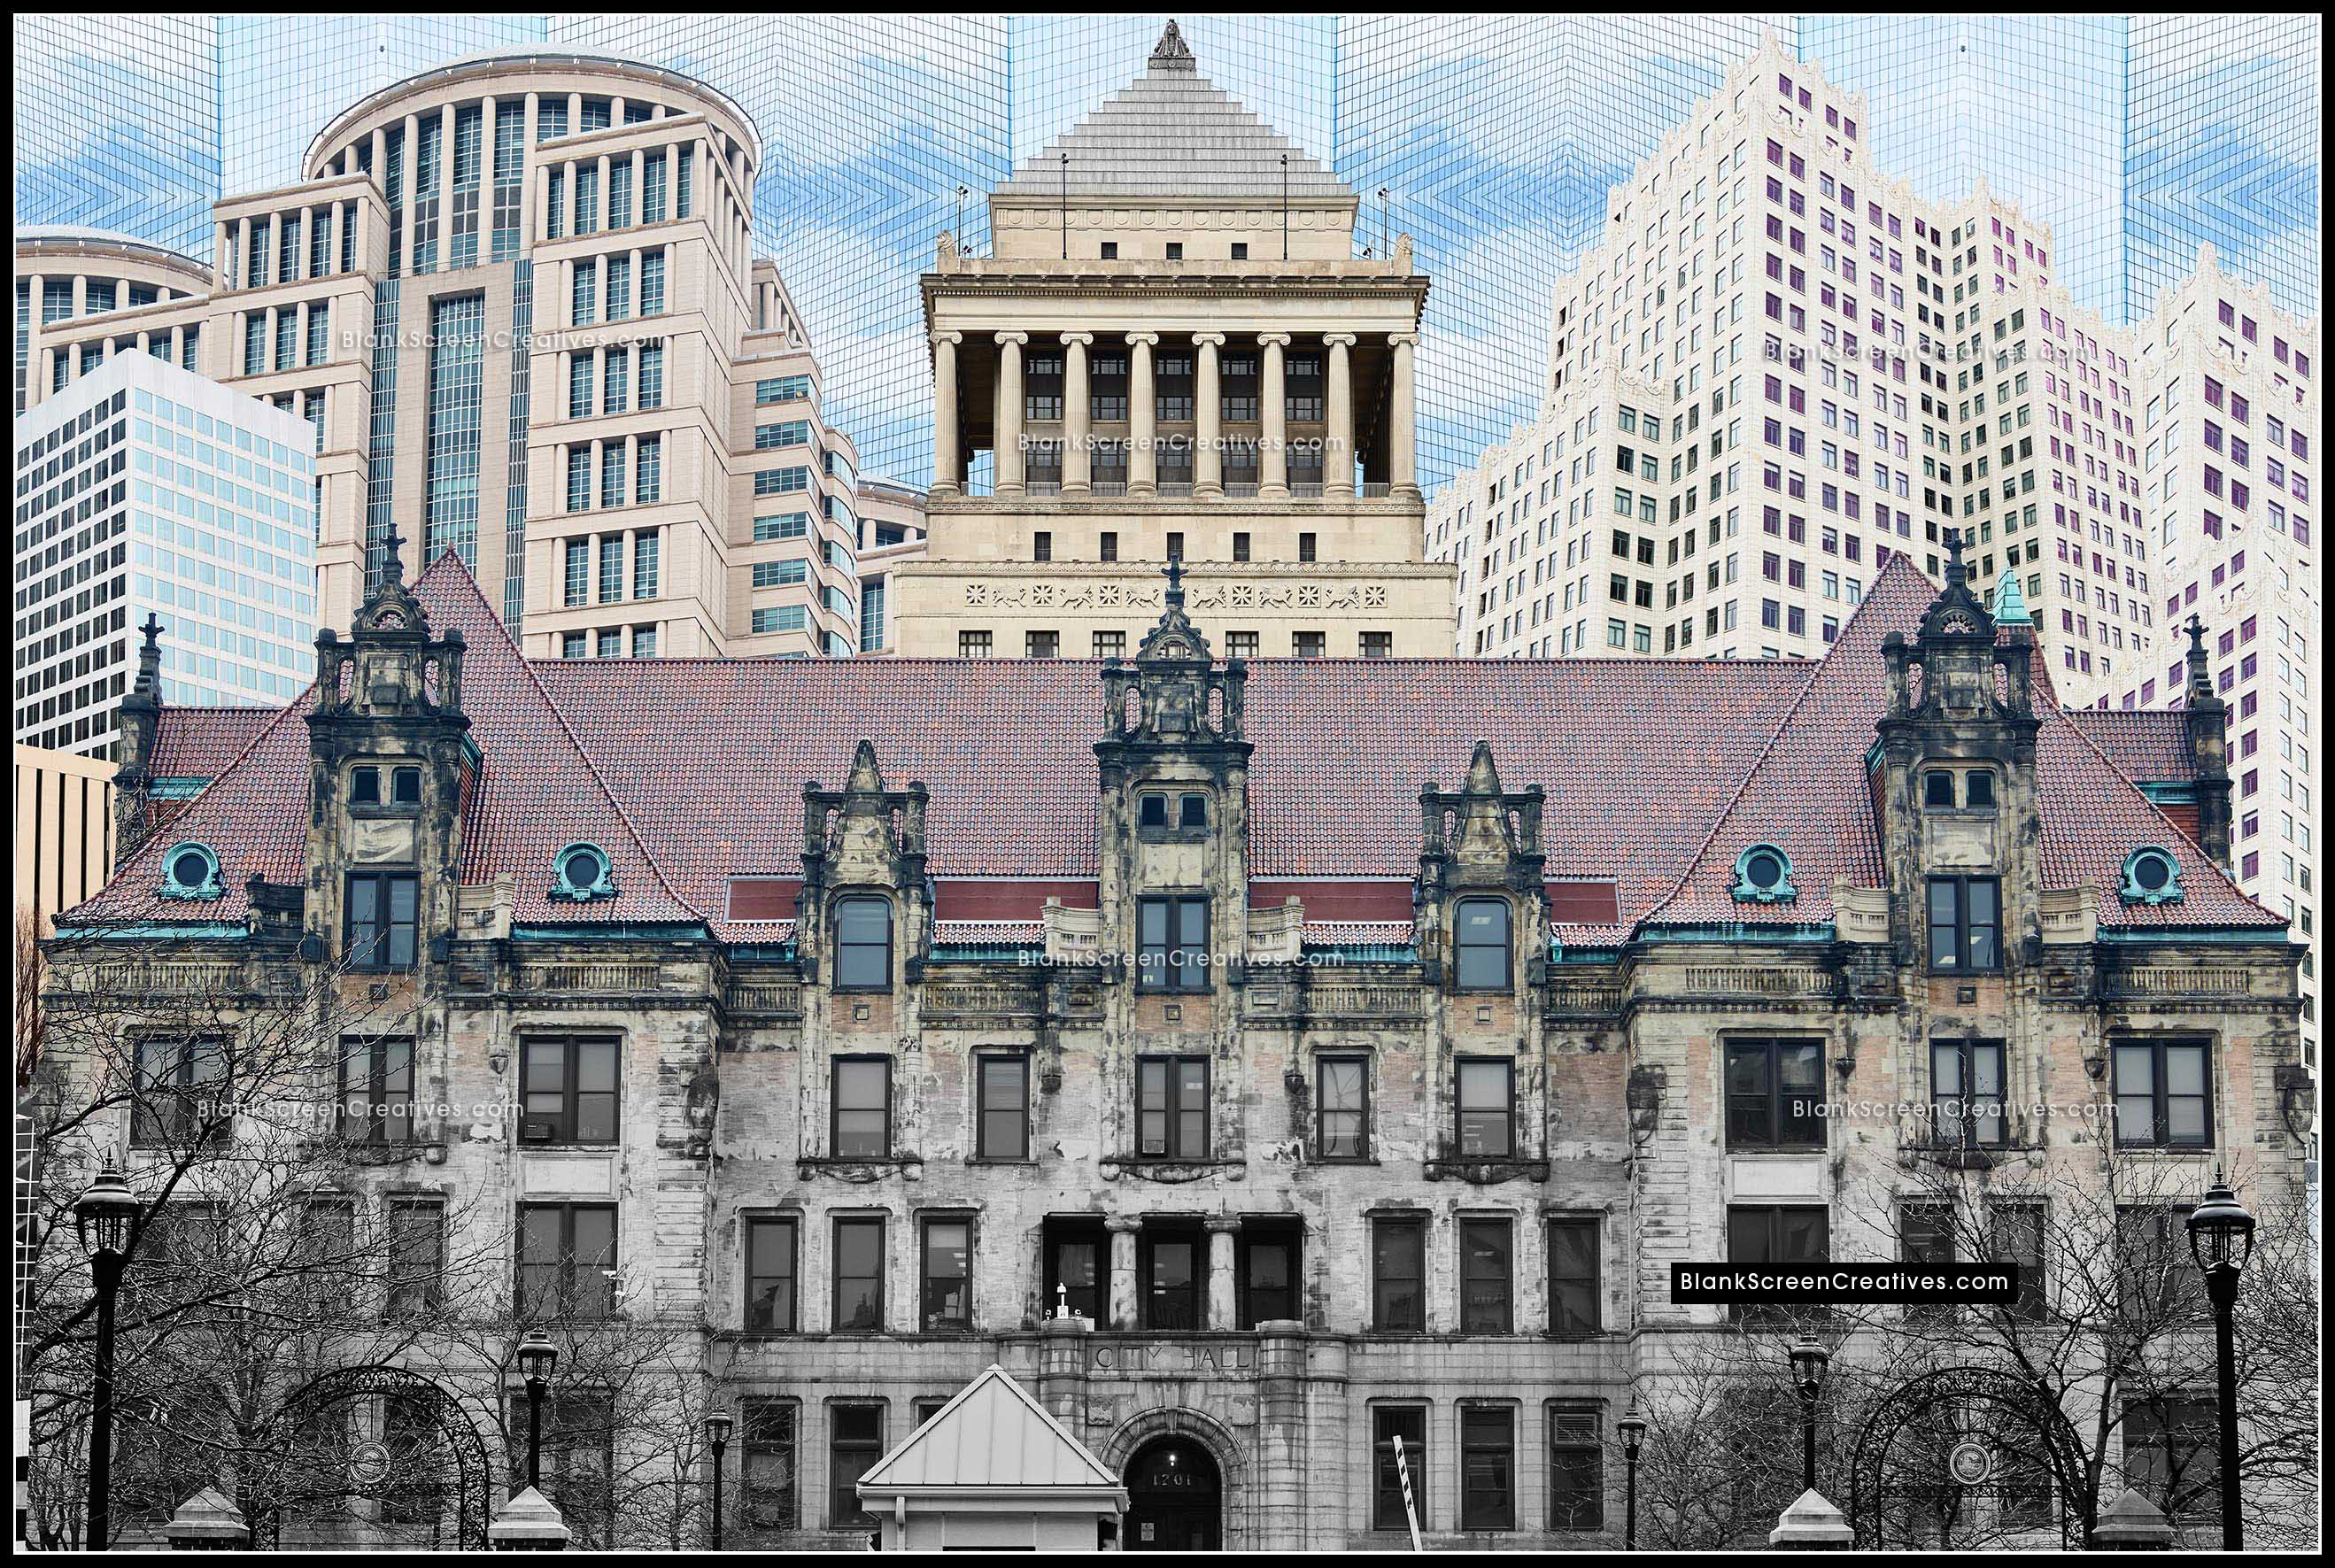 St. Louis Municipal Buildings